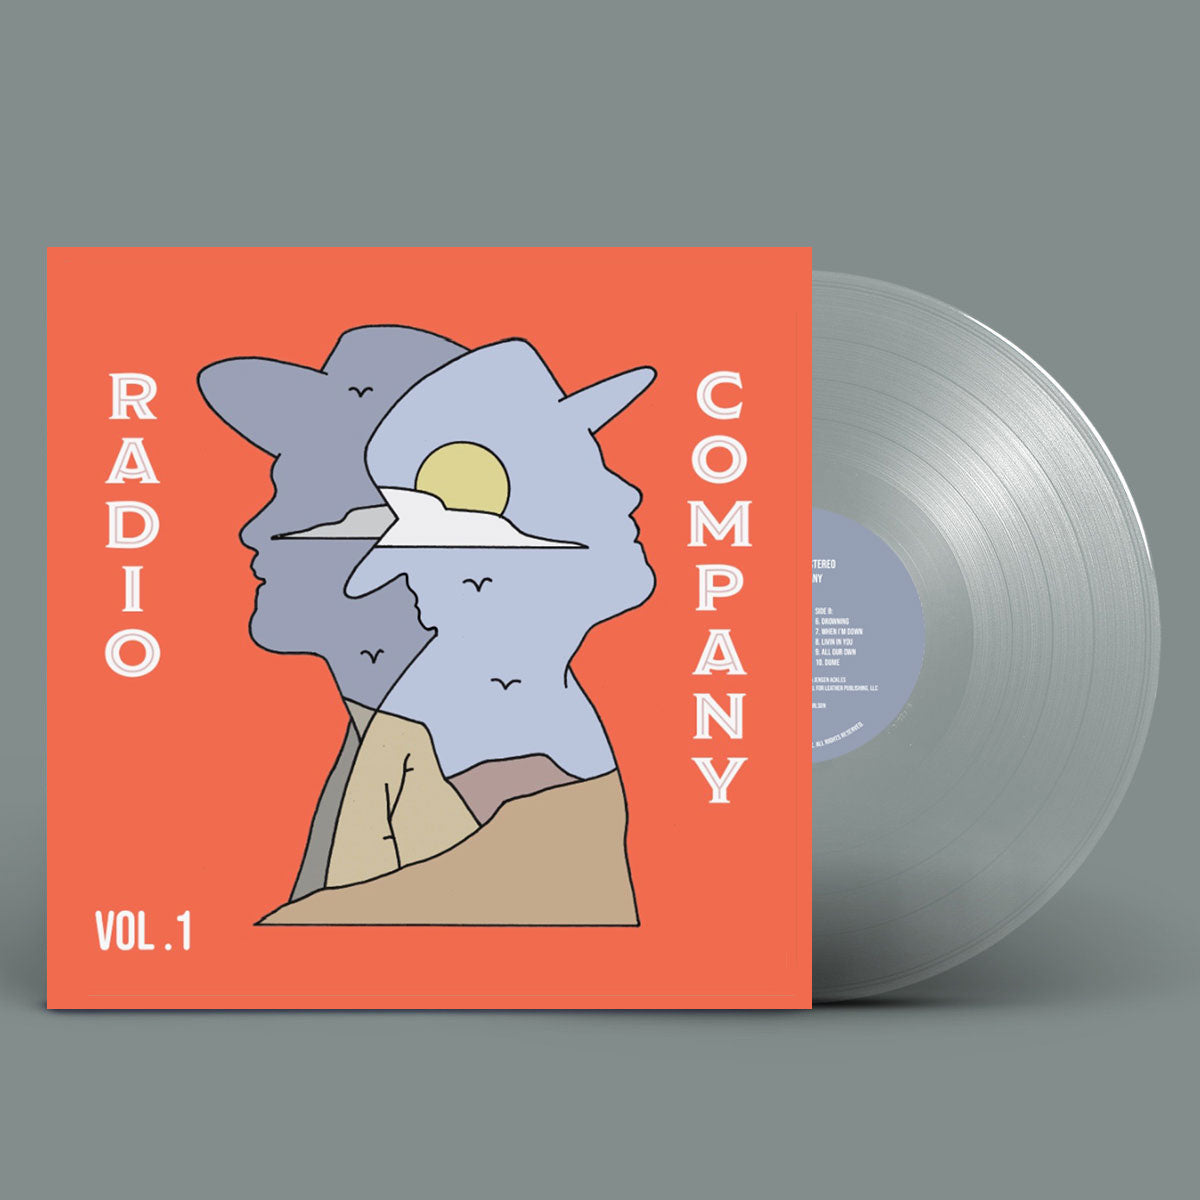 Radio Company - Limited Edition Vinyl Album